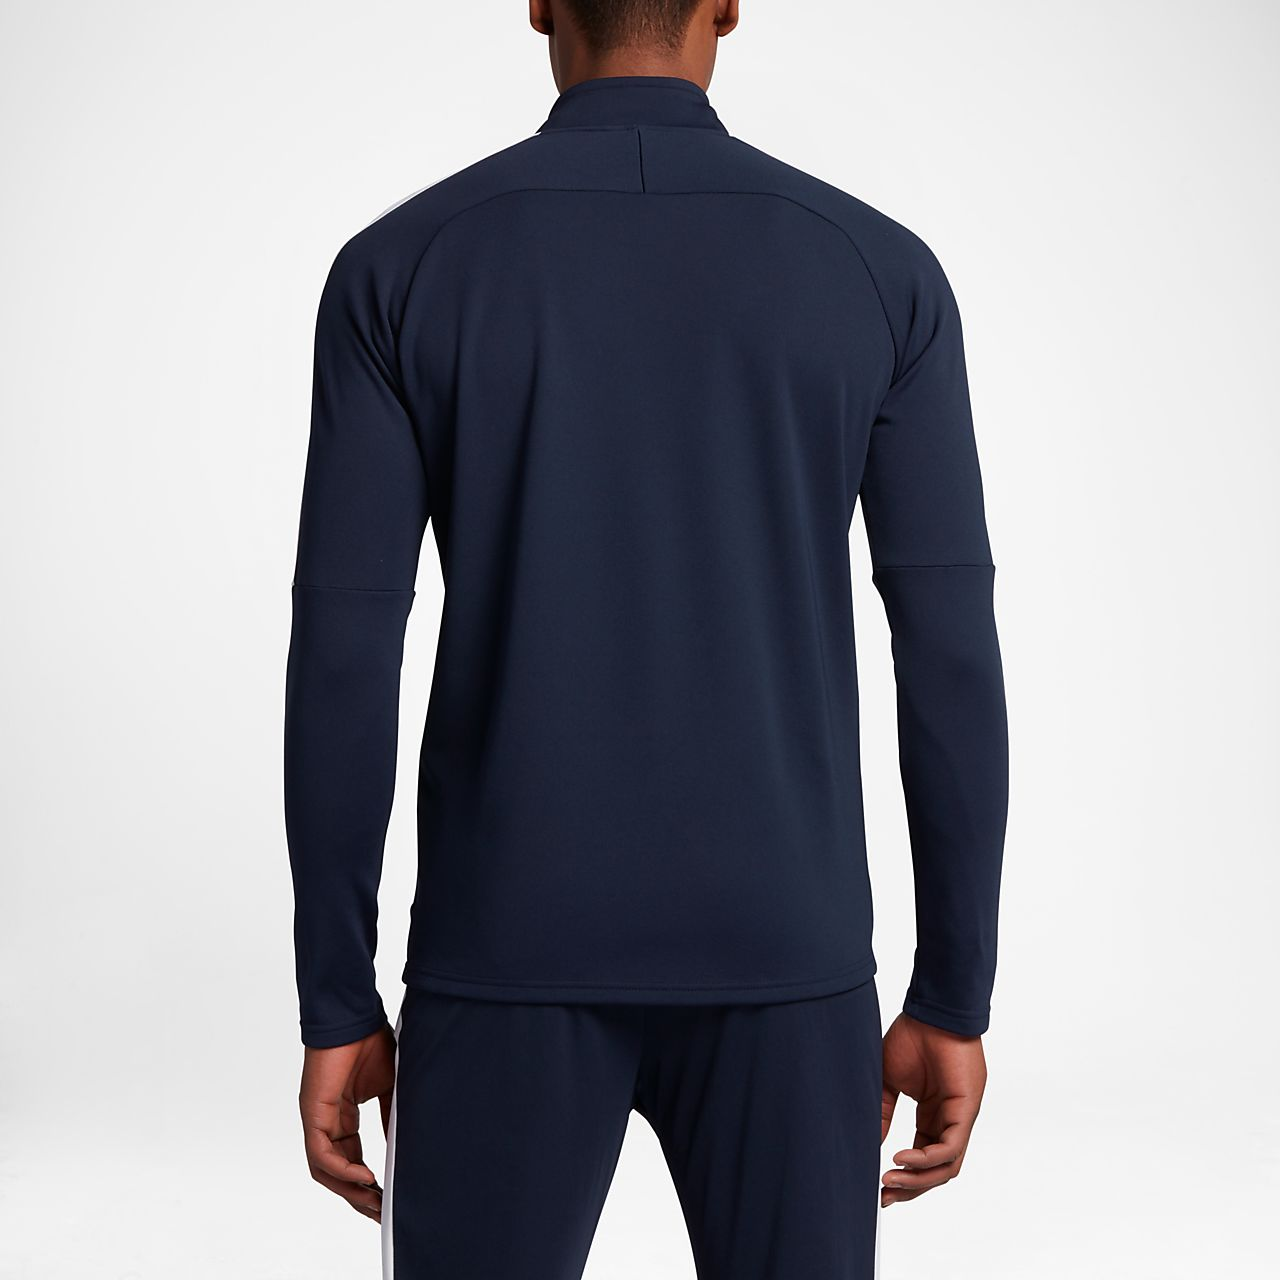 ... Nike Dri-FIT Academy Men's 1/4 Zip Football Drill Top